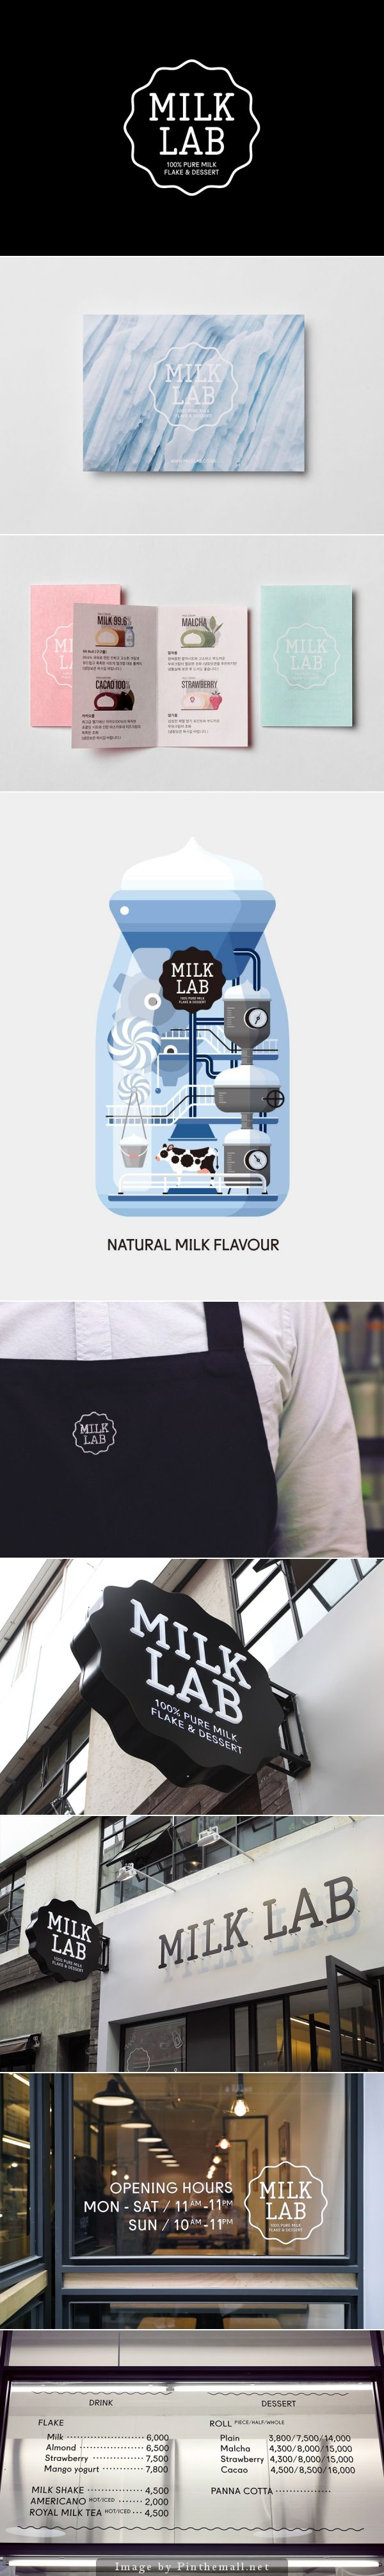 Milk Lab Branding by Studio FNT.  Love the cohesive design throughout the Milk Lab. From the aprons to the exterior sign.